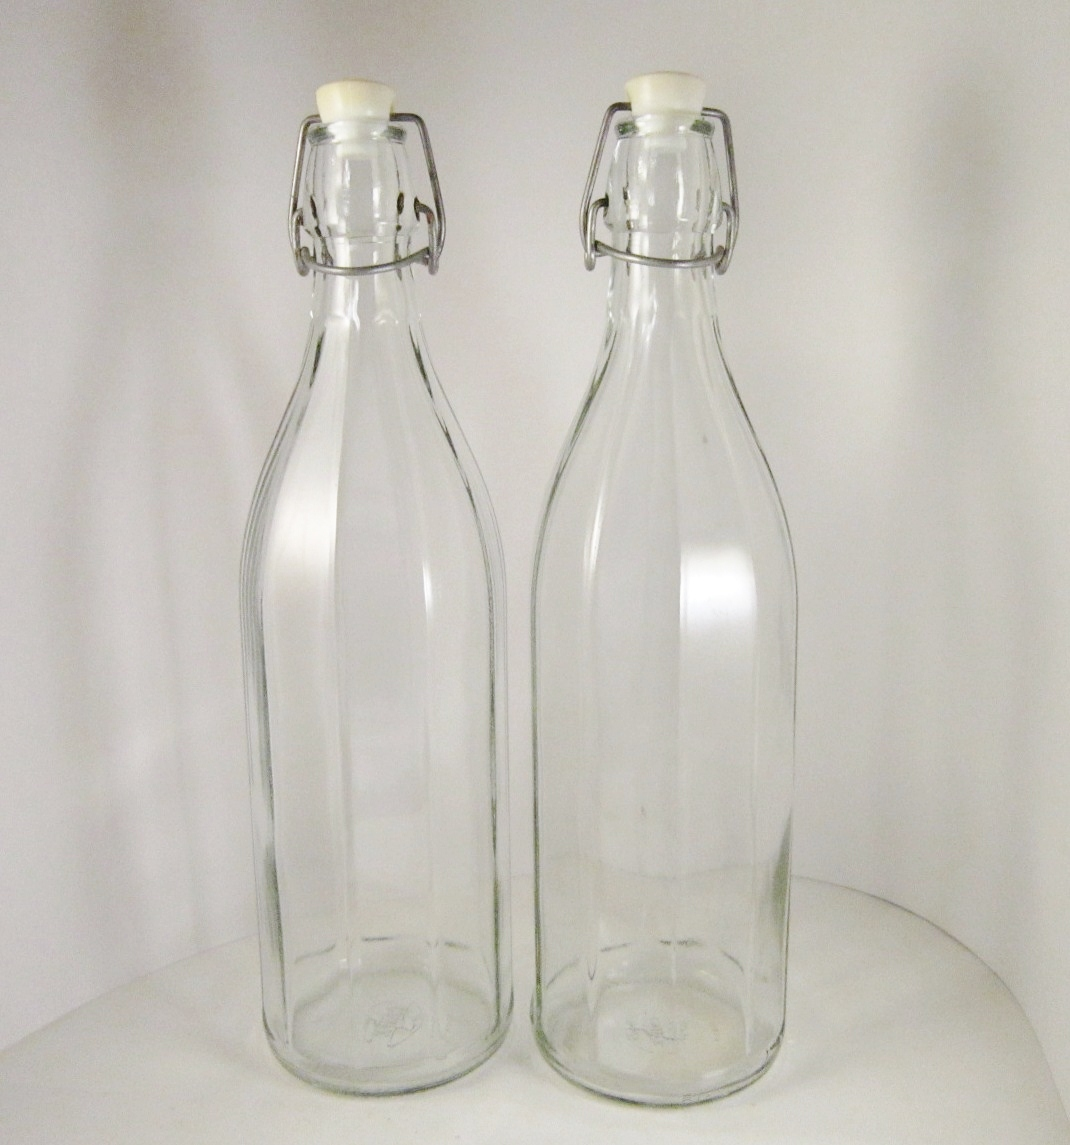 Two Tall Italian Cerve Glass Bottles, Wire Bail and Stopper, Panelled